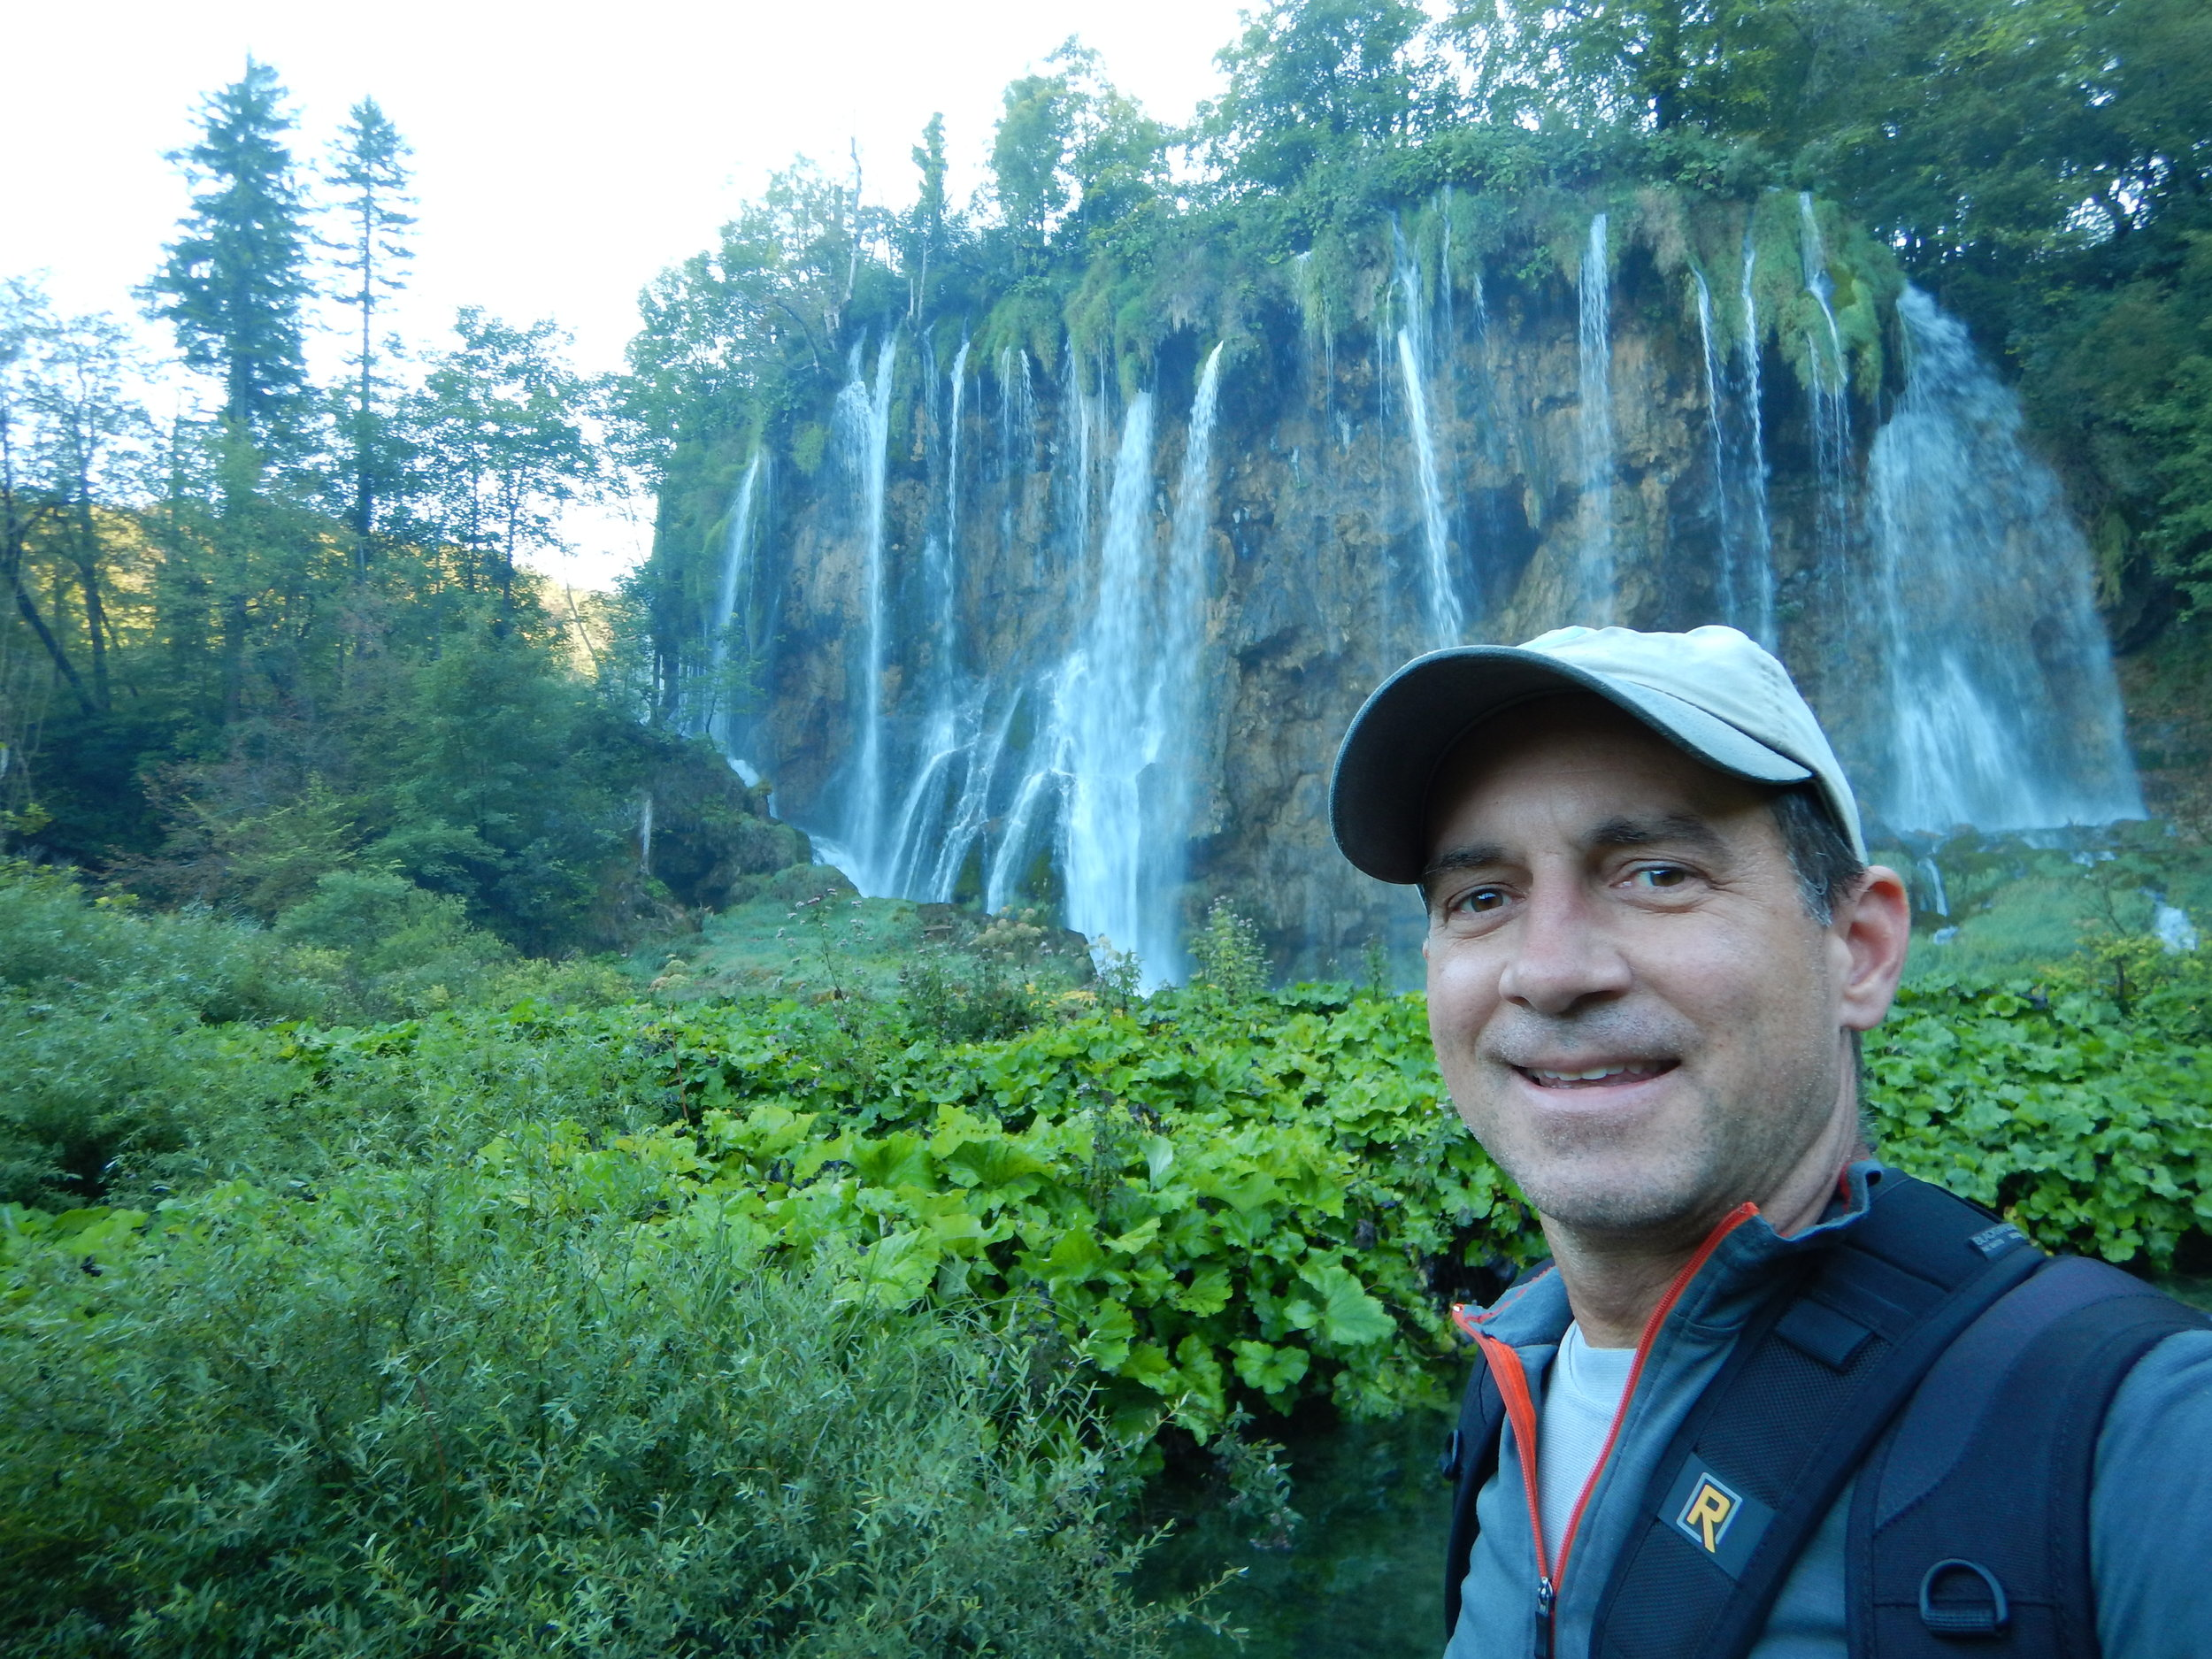 Plitvice Lakes National Park - me in front of one of the many waterfalls.